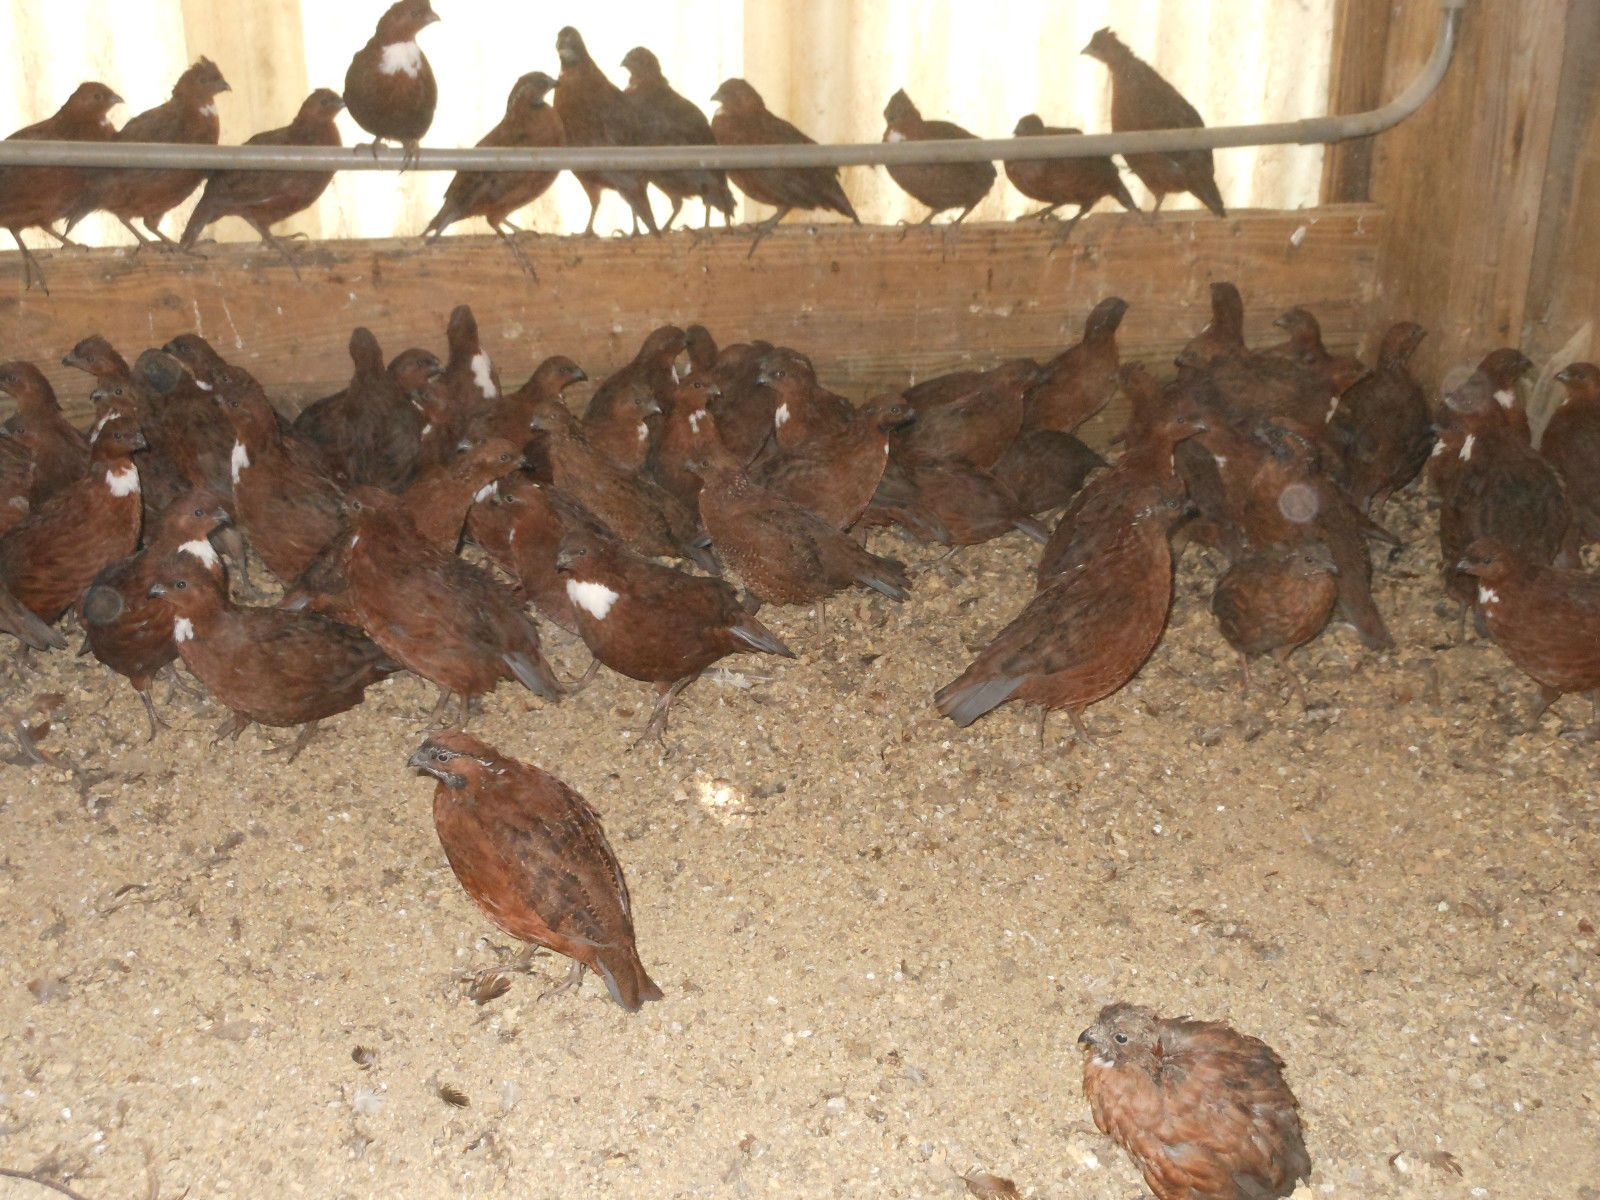 hight resolution of tennessee red white bobwhite snow flake quail 36 assorted hatching snow quail diagram